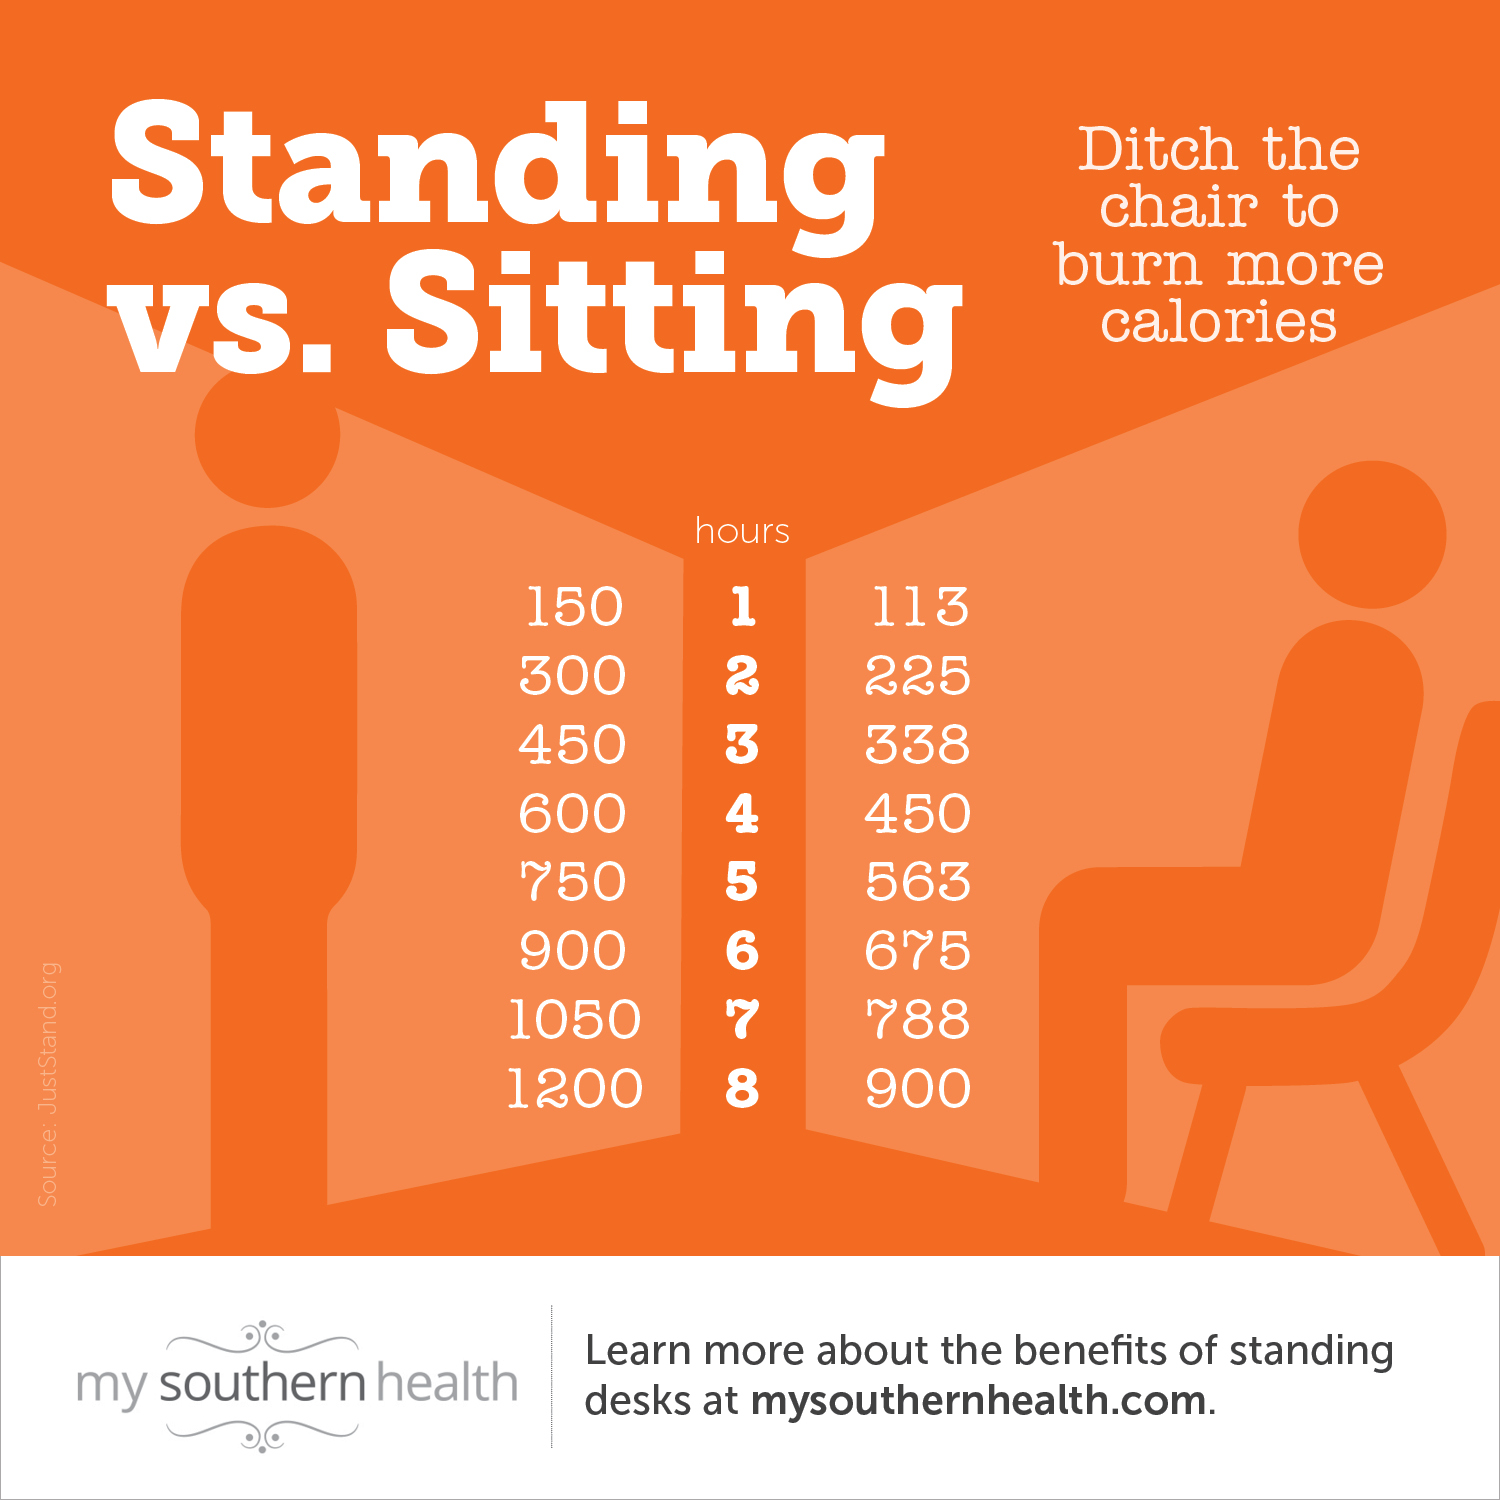 sitting vs. standing at work